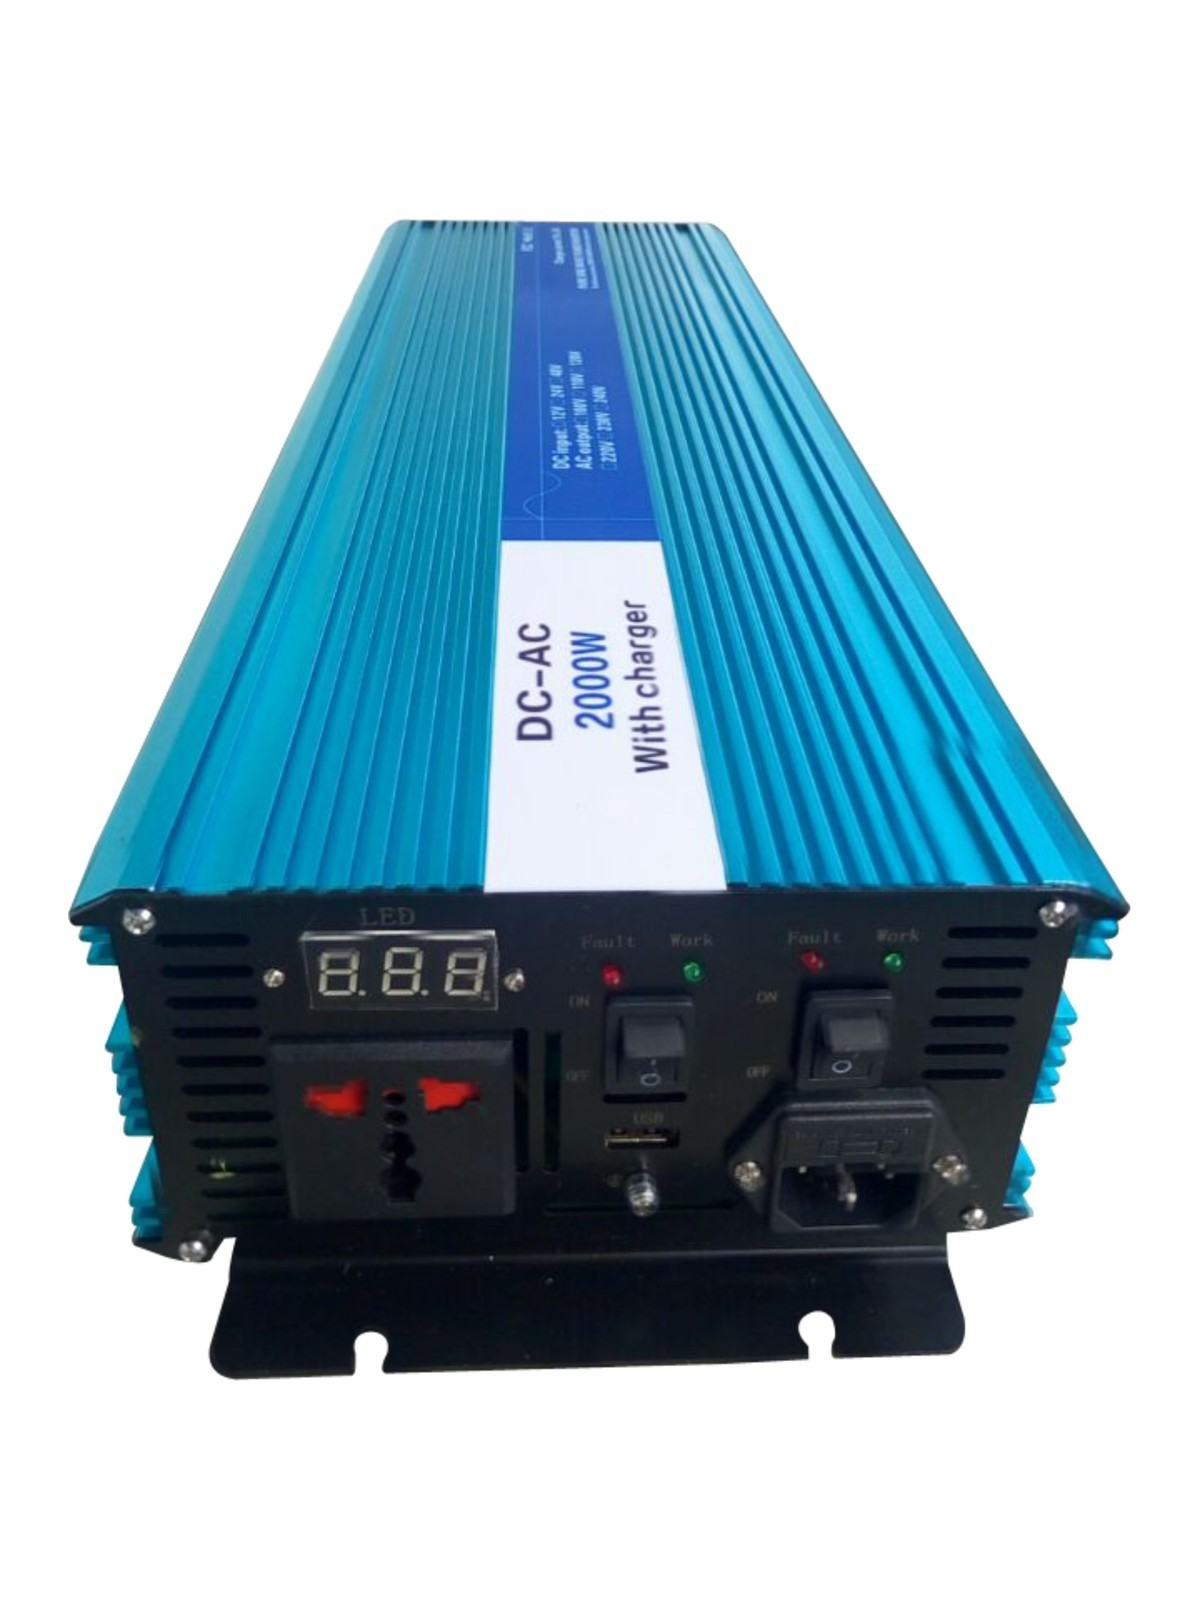 Full Power 2000W Pure Sine Wave Inverter,DC 12V/24V/48V To AC 110V/220V,off Grid Solar Inverter With Battery Charger And UPS 2000w pure sine wave inverter dc 12v 24v 48v to ac 110v 220v off grid power inverter work with solar wind battery panel